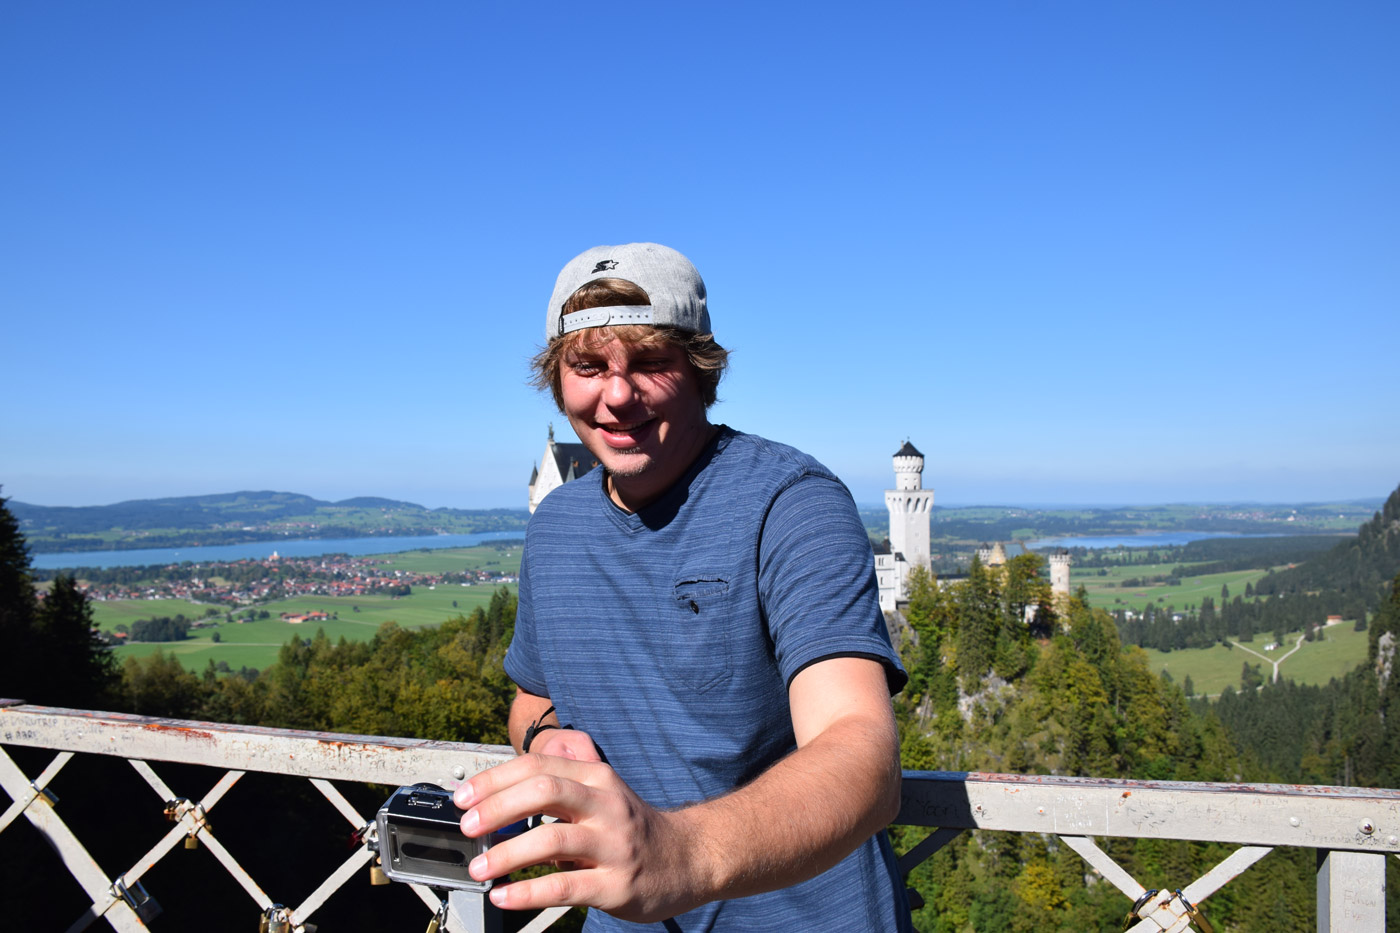 My brother utilizing the latest selfie stick craze. It actually came in handy on this crowded bridge overlooking Schloss Neuschwanstein.